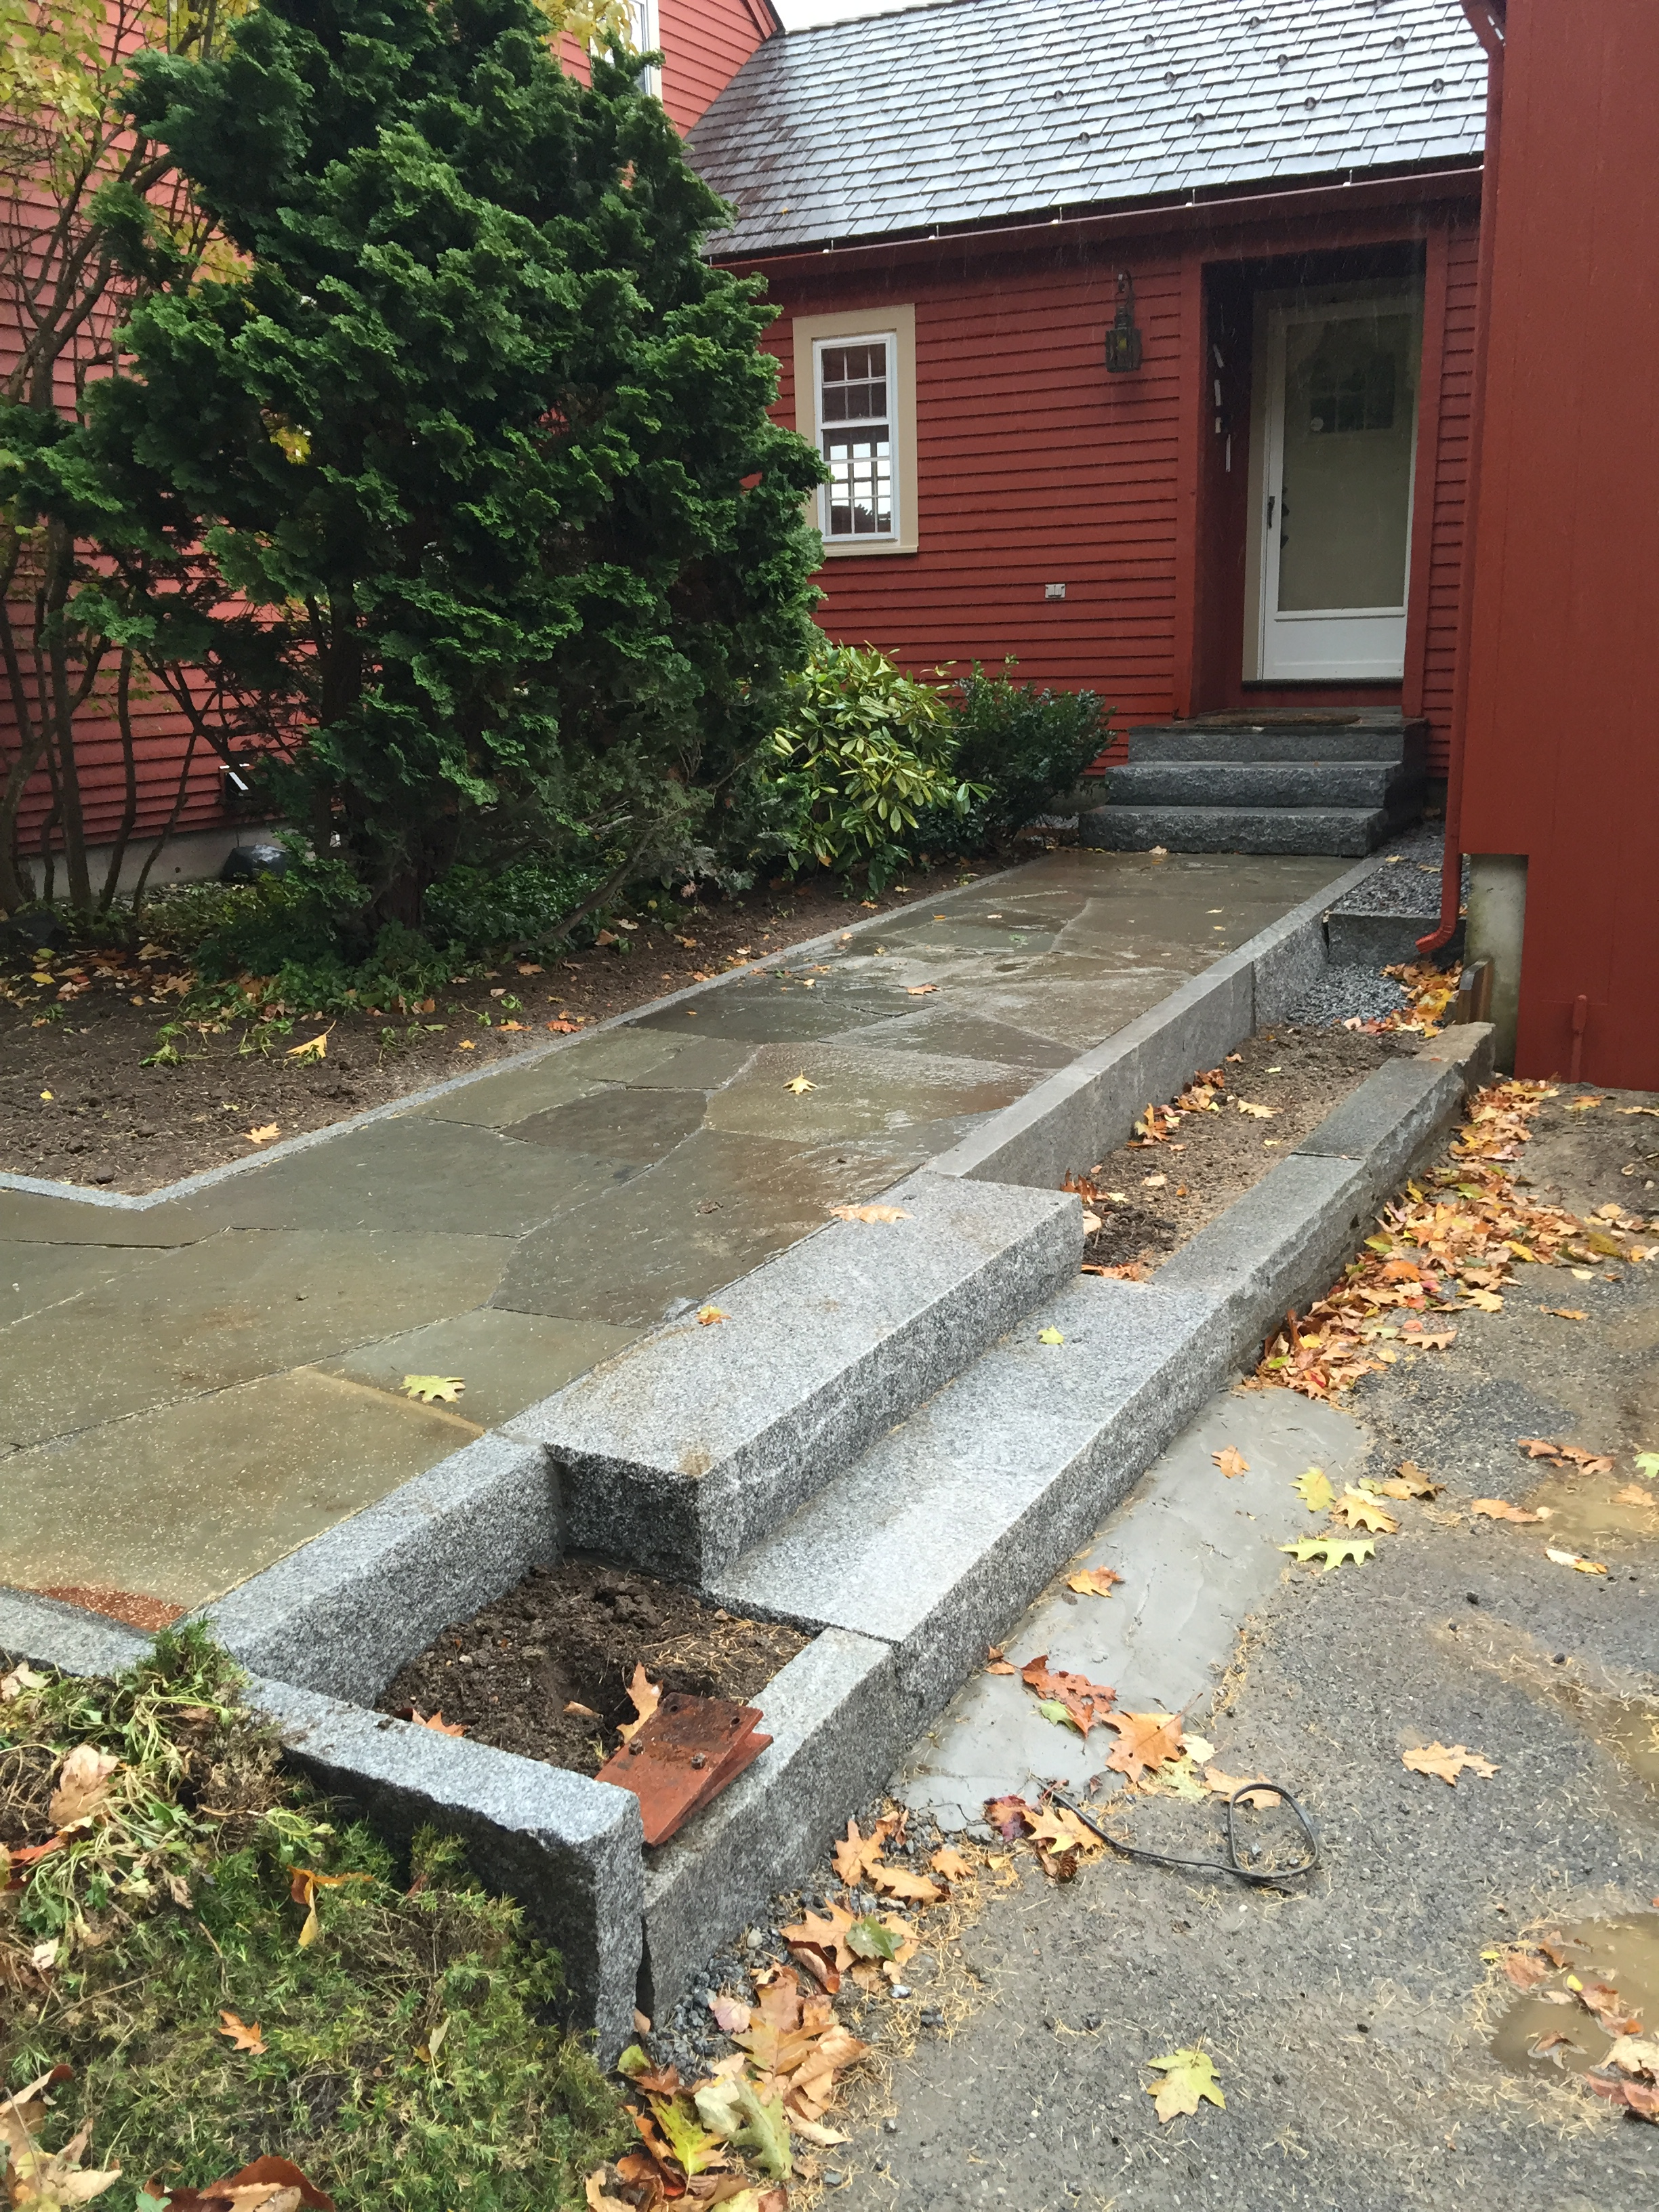 Curbing, Steps and Path to Entry Door